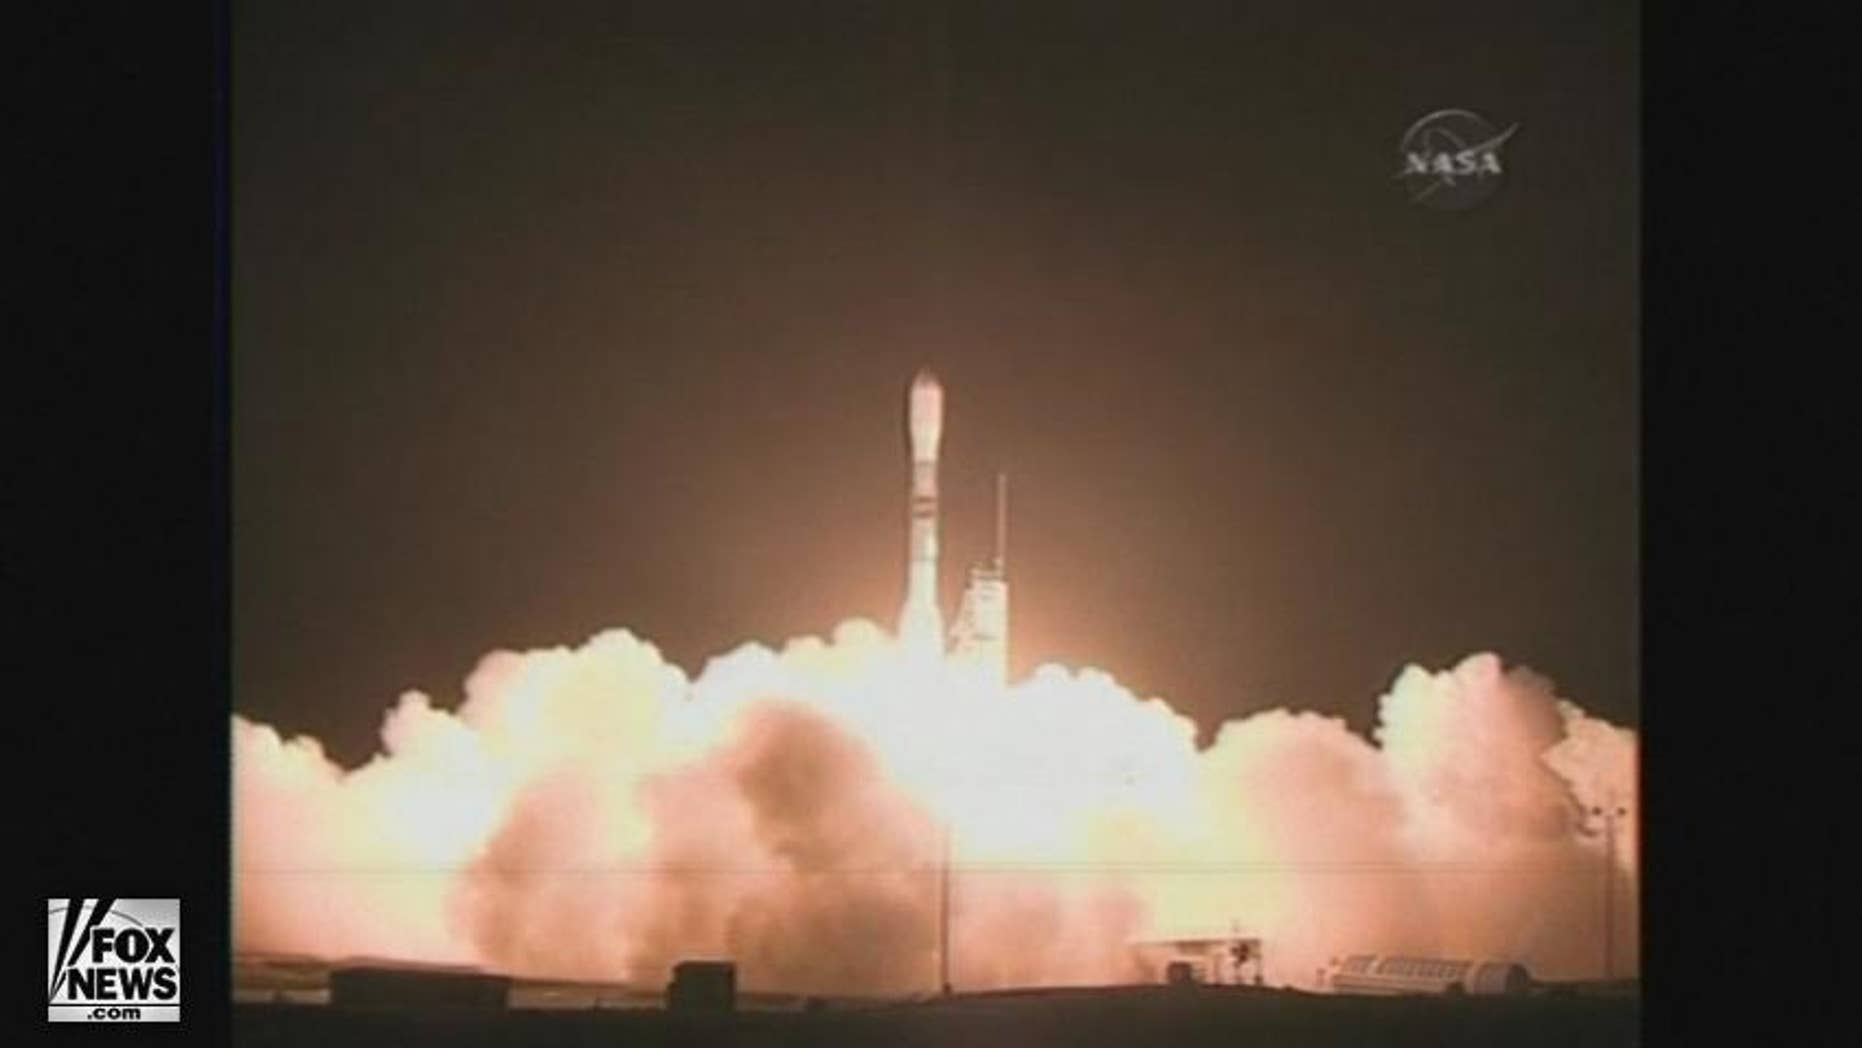 At Vandenberg Air Force Base in California, a Delta-2 rocket carrying NASA's newest telescope launched smoothly into space.